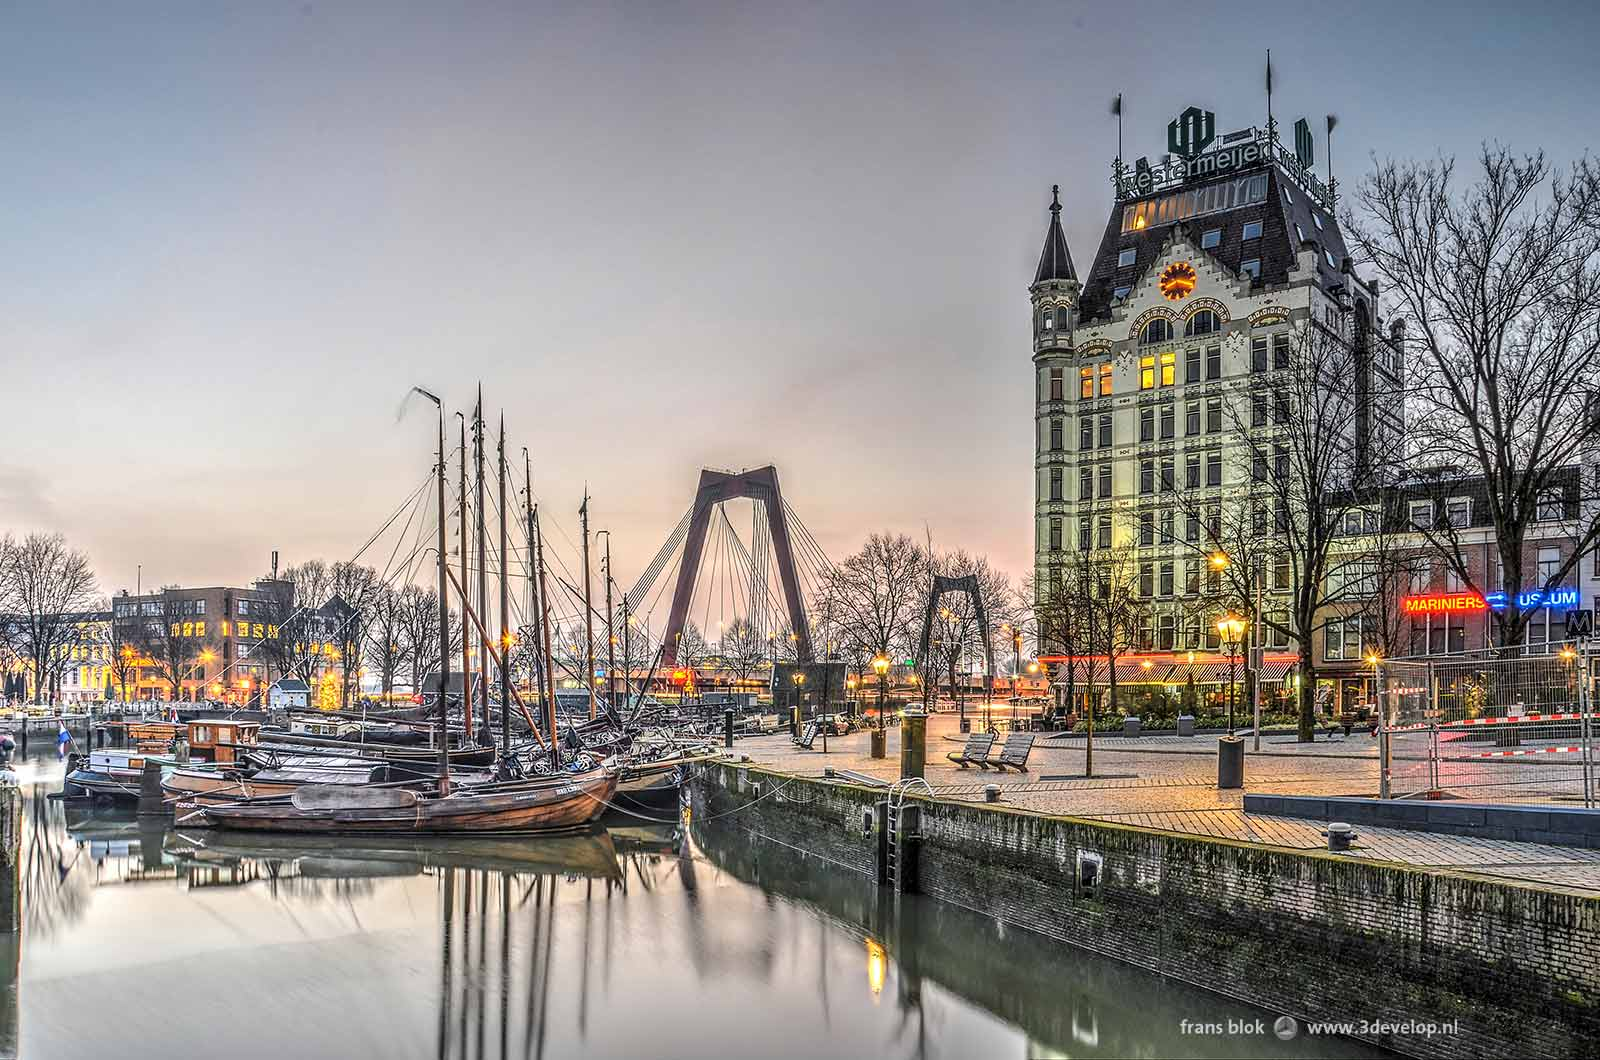 Sunrise on an almost cloudless day in Rotterdam, with Willems Bridge, the White House and the Old Harbour